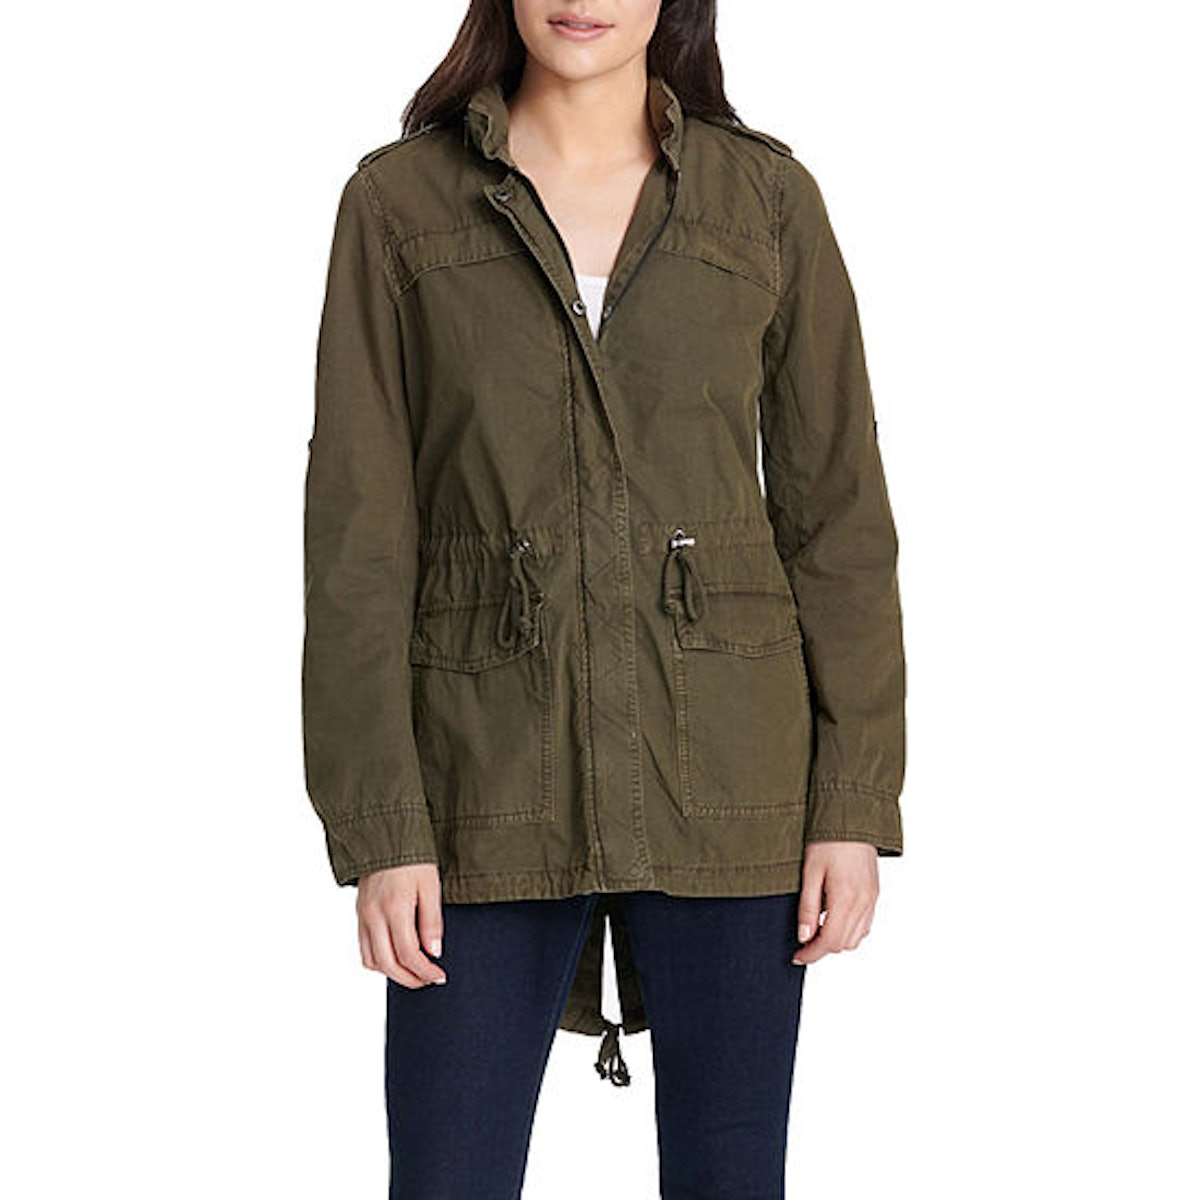 Olive Green Anorak for a DIY Halloween Costume